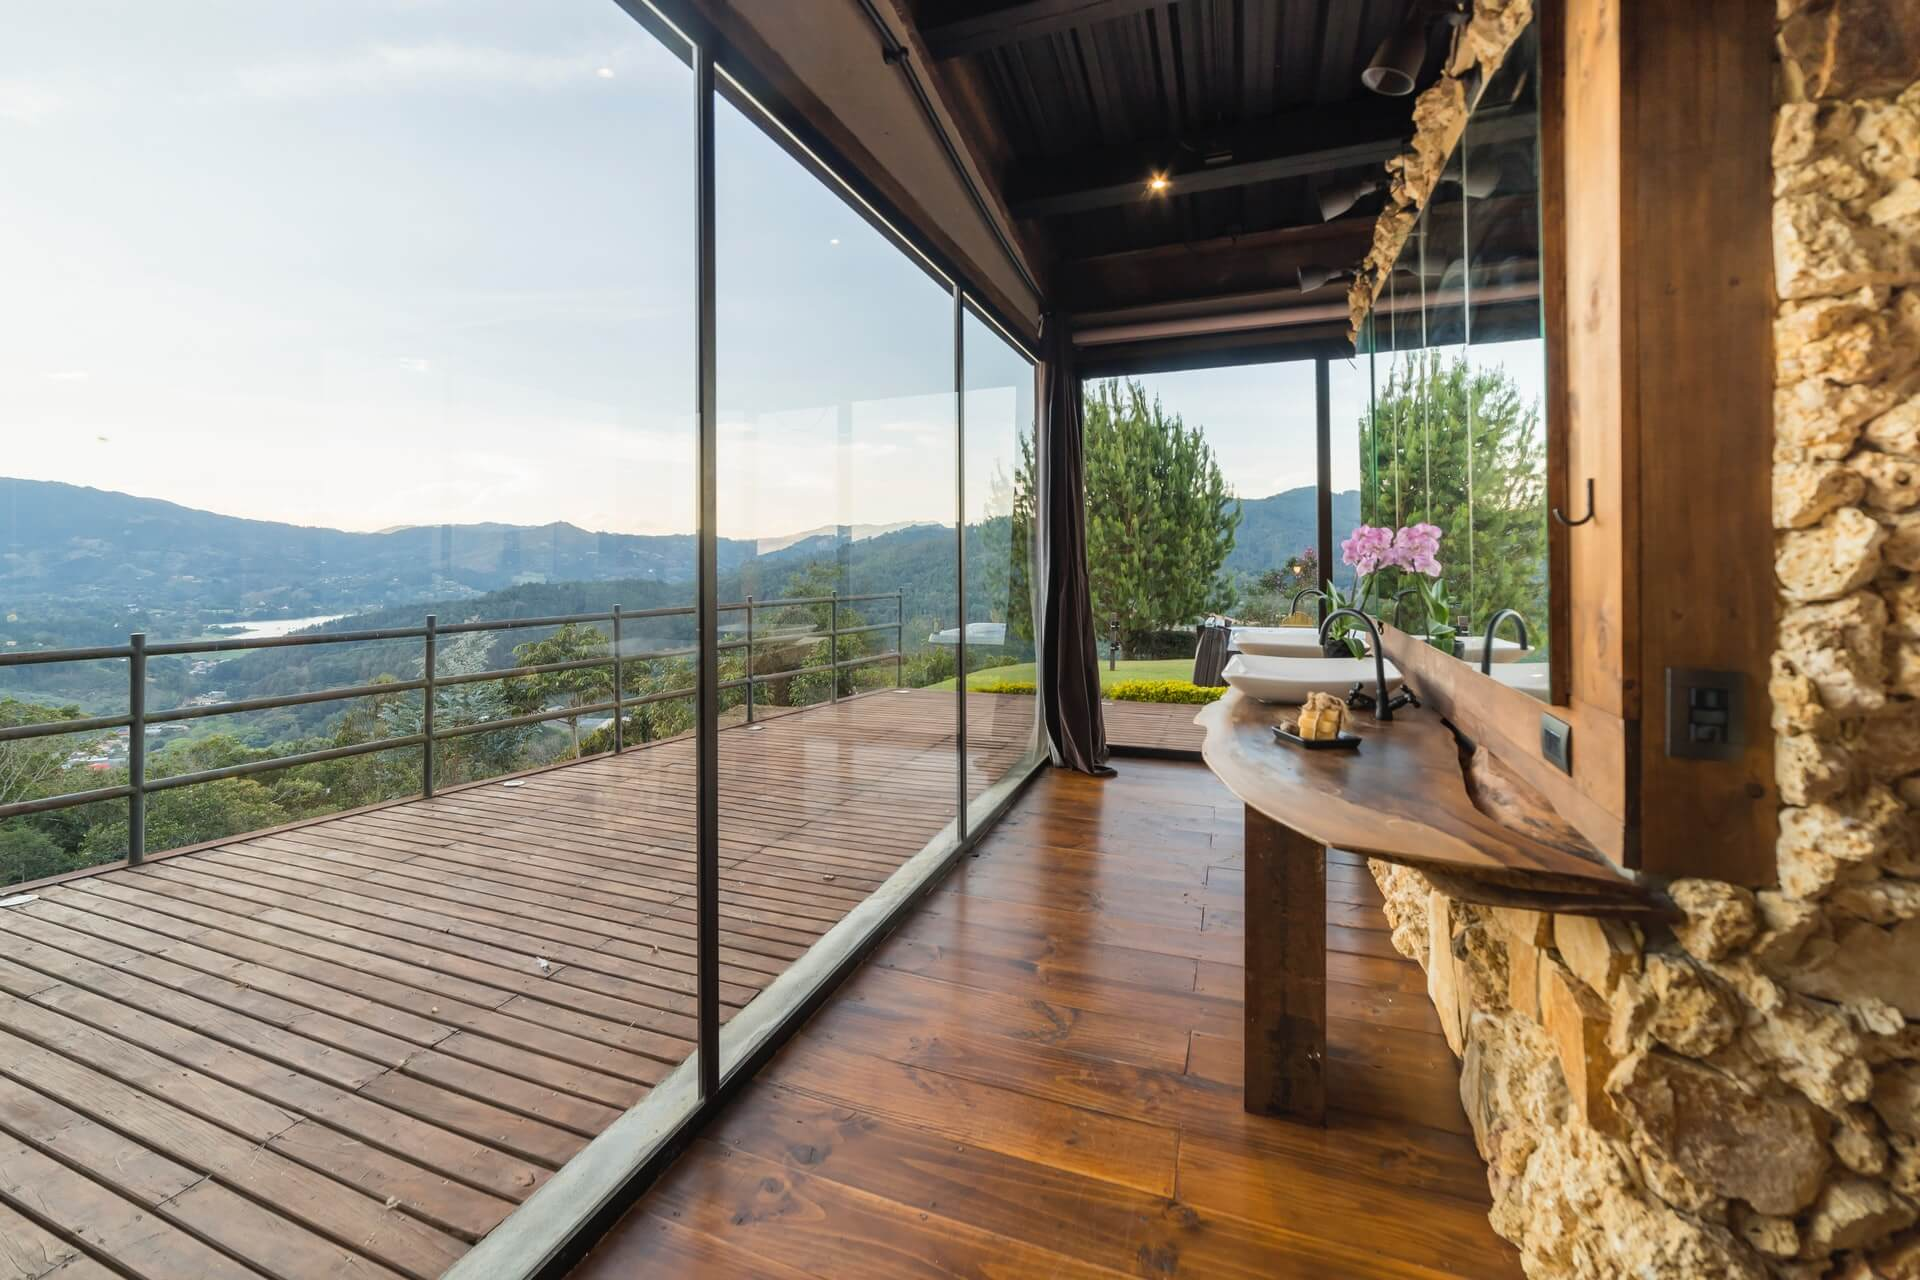 Luxury Cabins in Pigeon Forge, TN